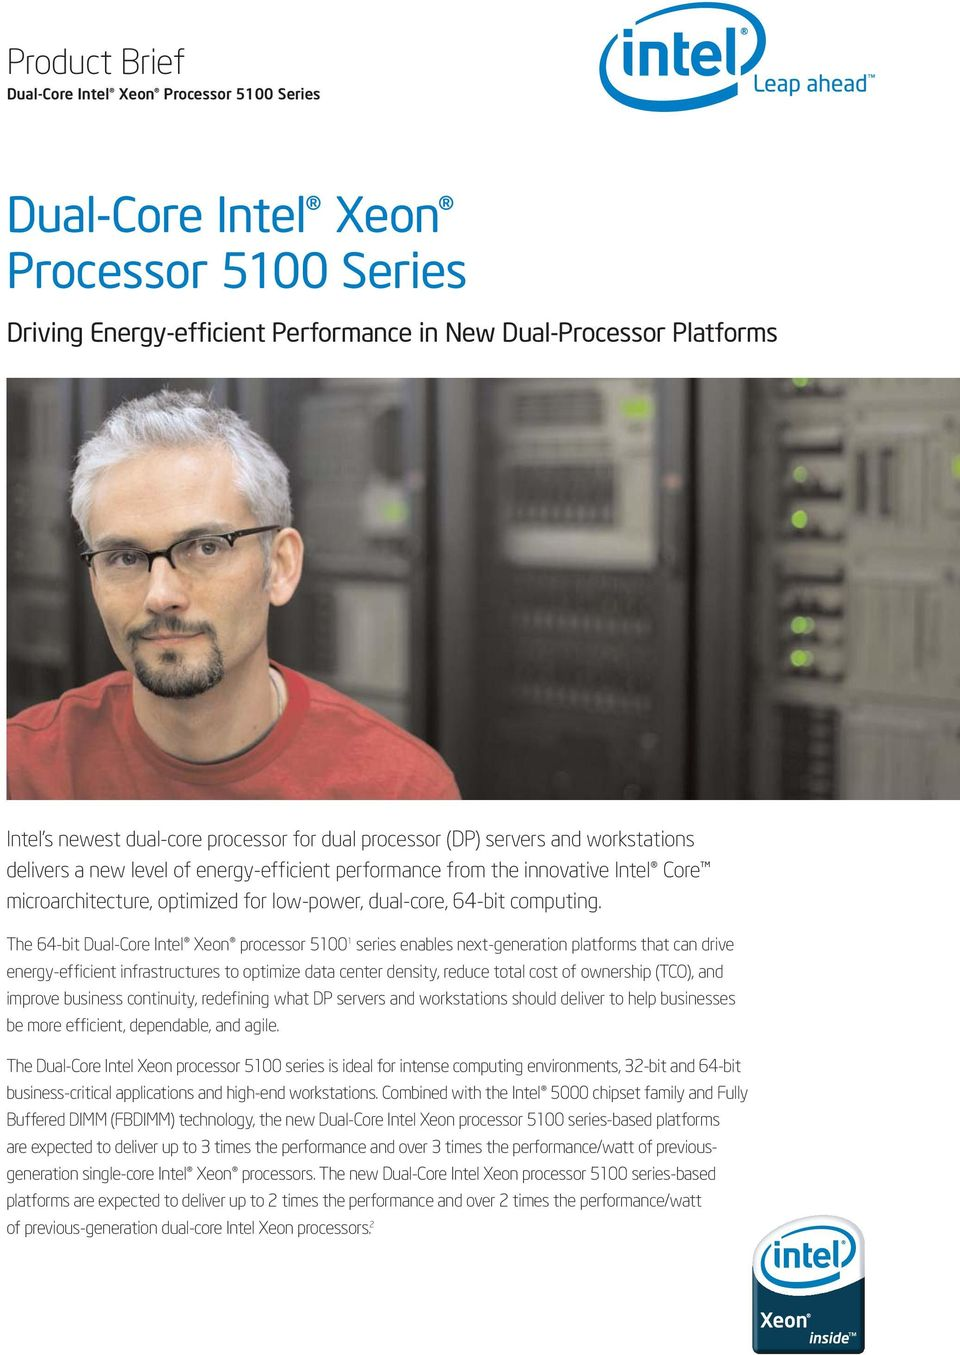 The 64-bit processor 5100 1 series enables next-generation platforms that can drive energy-efficient infrastructures to optimize data center density, reduce total cost of ownership (TCO), and improve